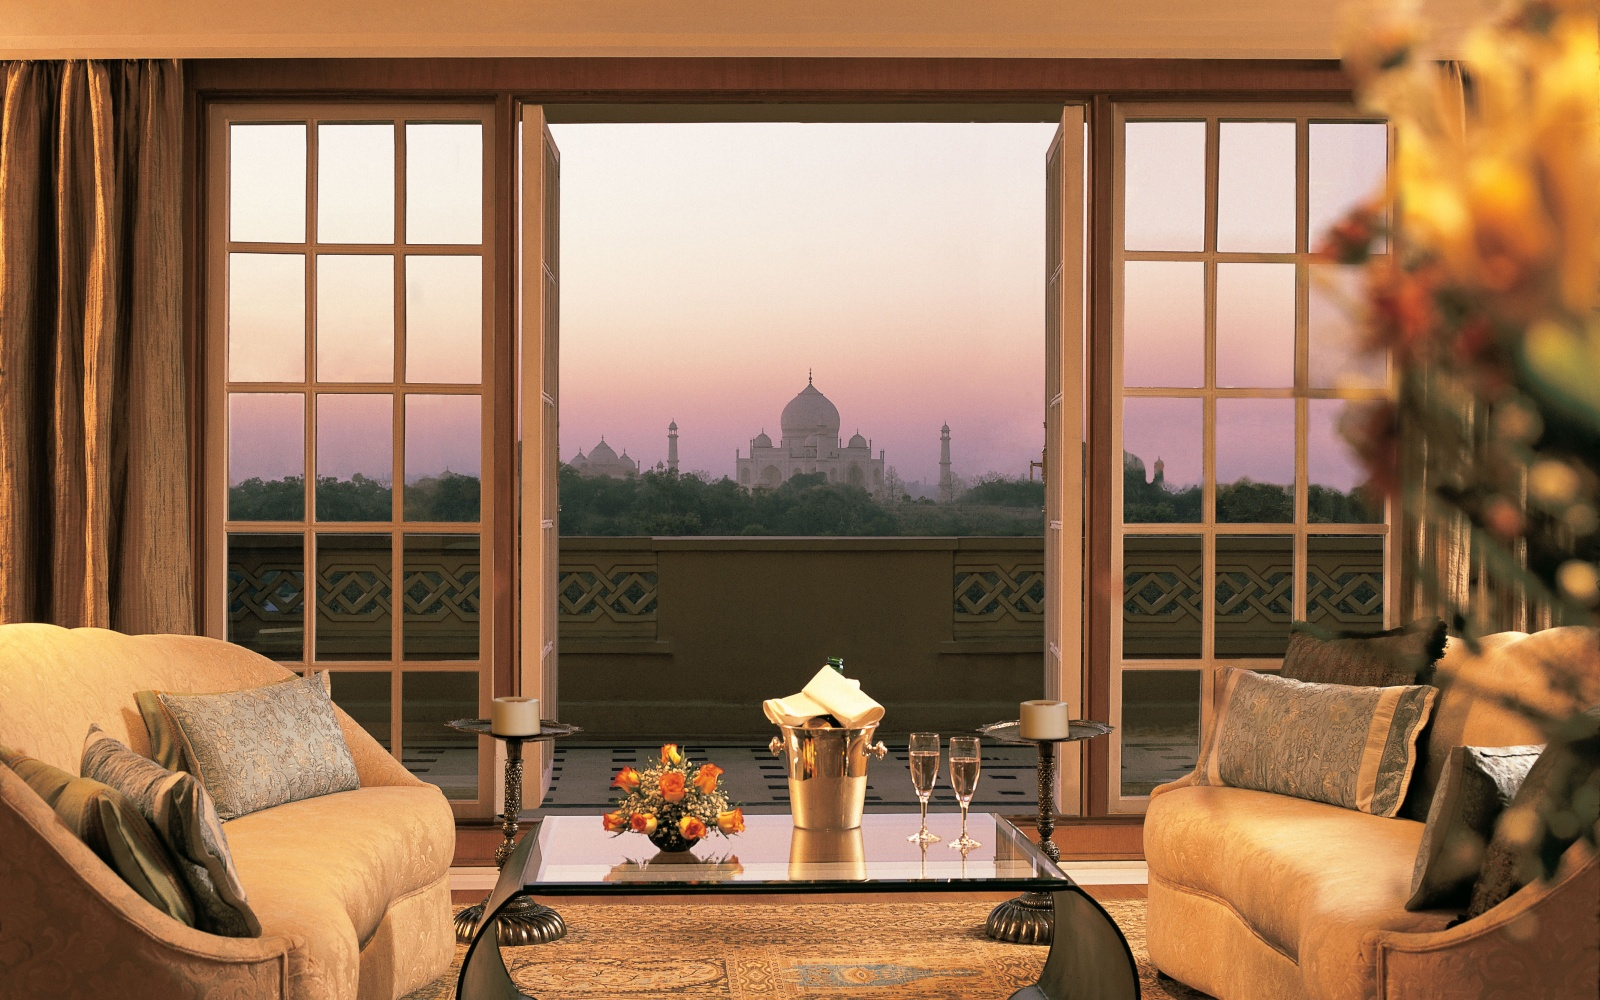 Best Hotel in Asia: The Oberoi Amarvilas